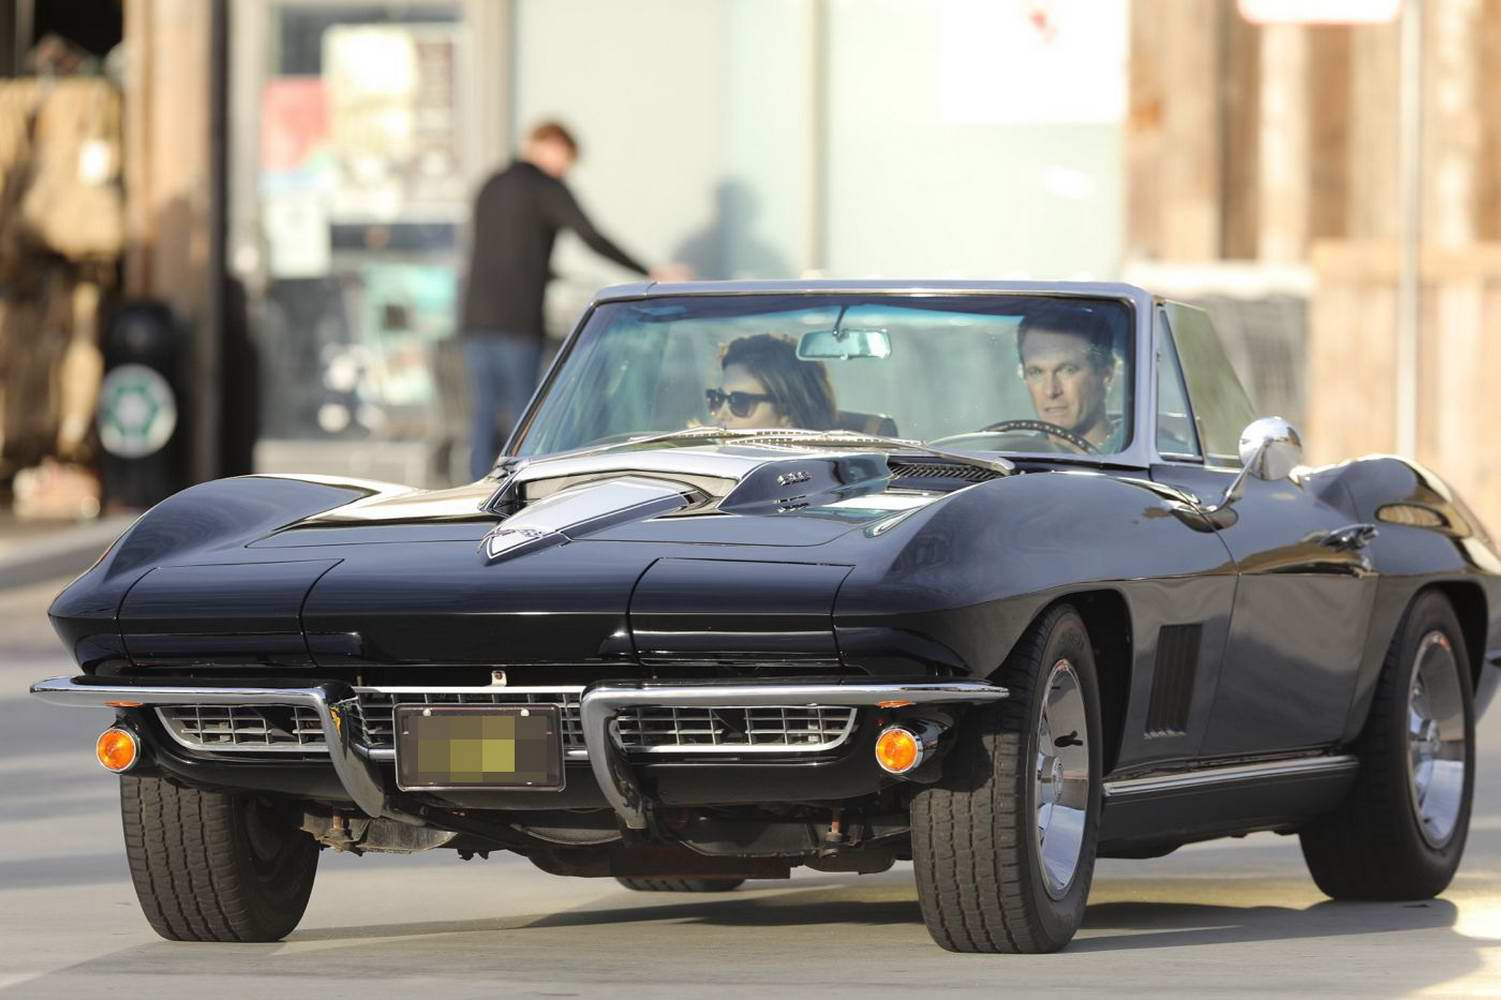 Cindy Crawford and Rande Gerber take their Corvette out for a spin in Los Angeles